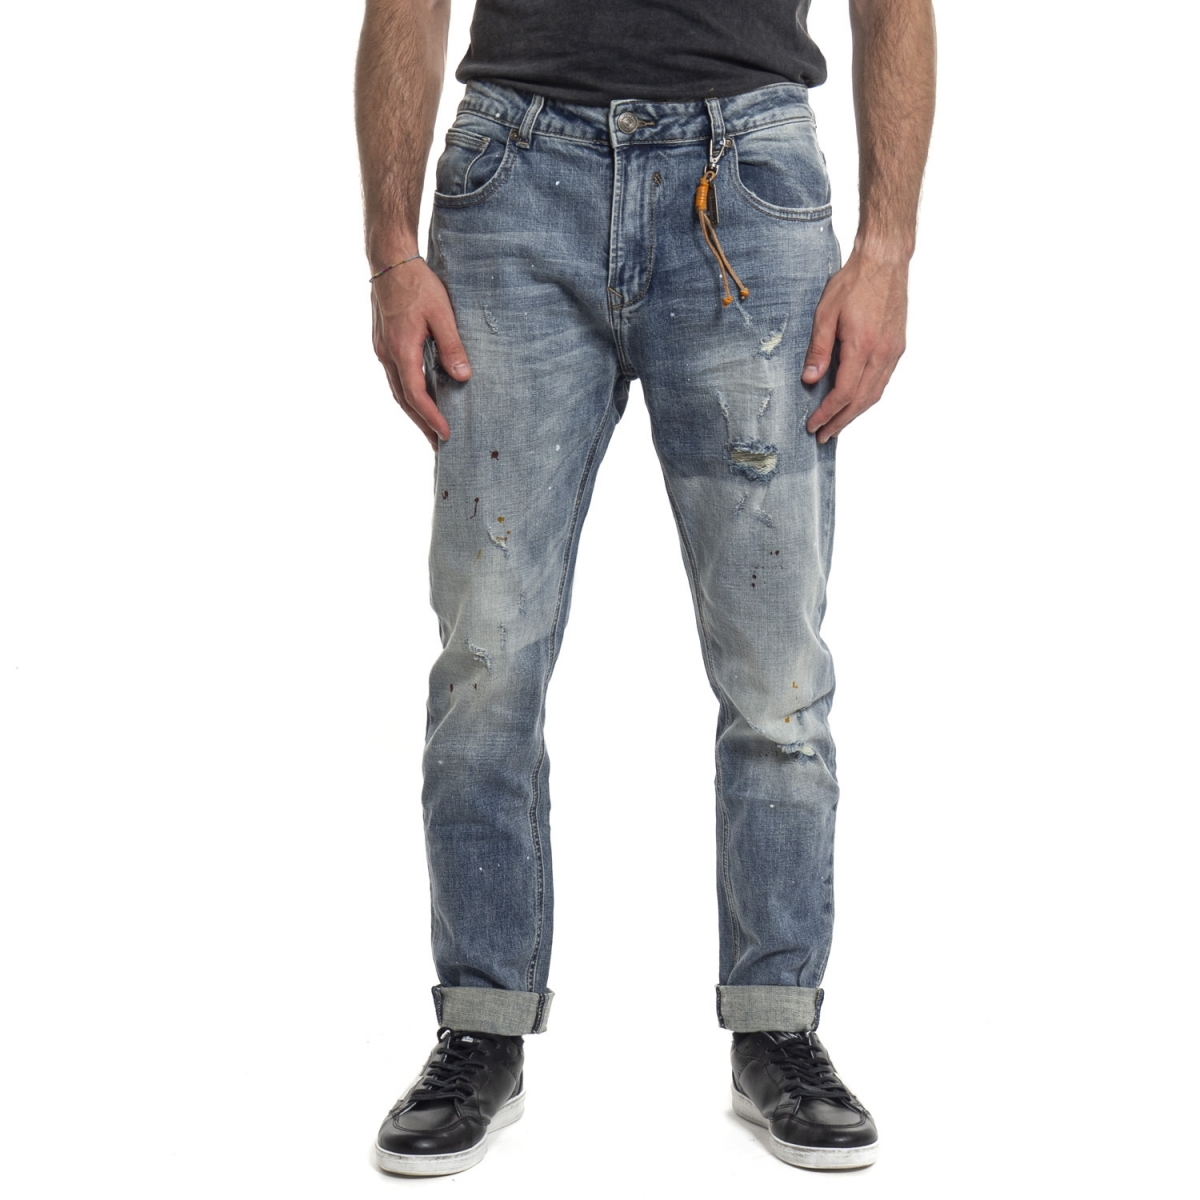 clothing Denim men Jeans GL083F GIANNI LUPO Cafedelmar Shop